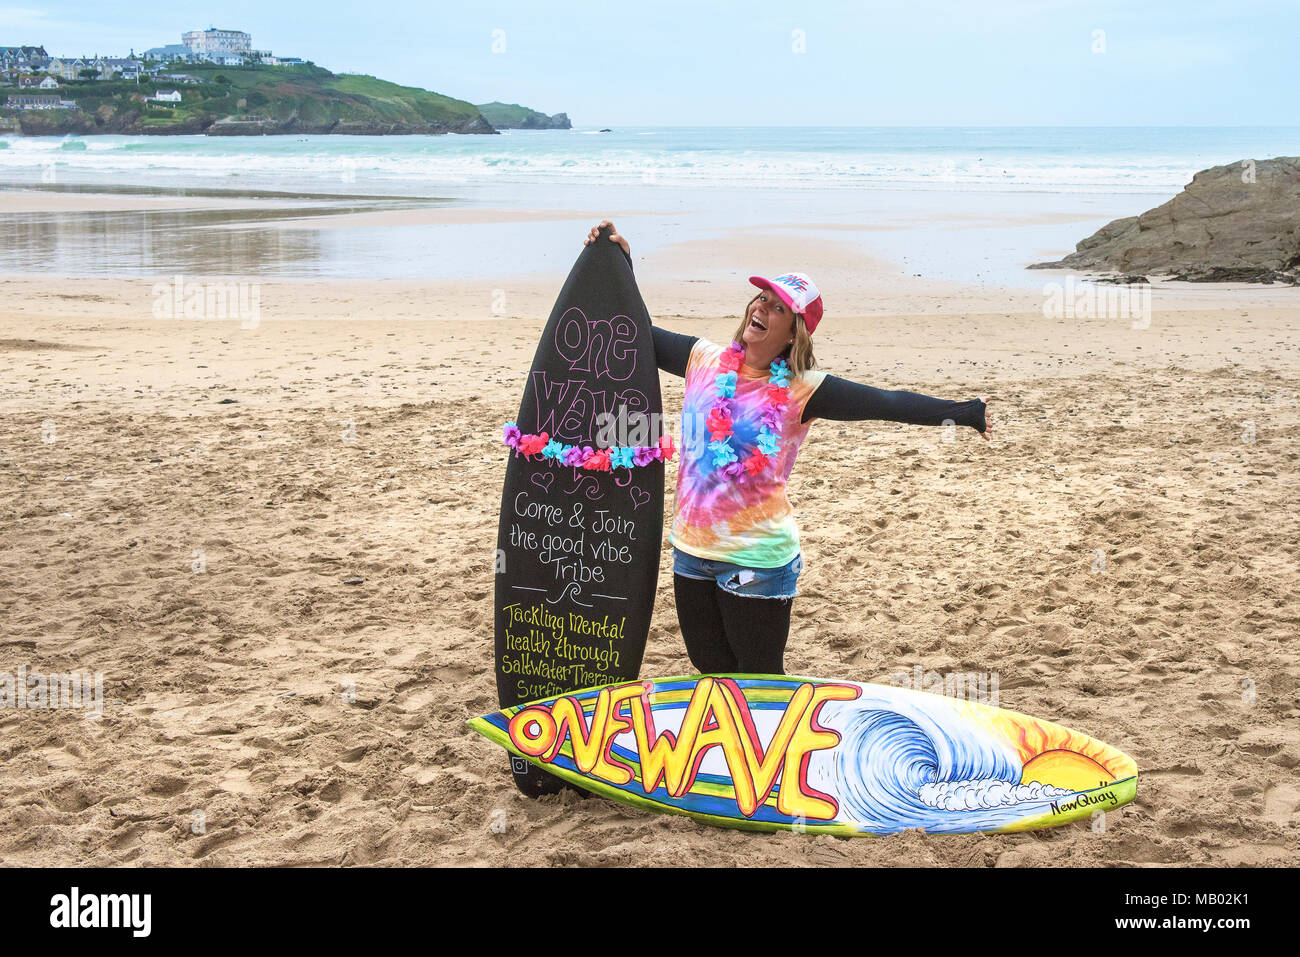 Lauren Turner one of the organisers of Surf Betty's Festival held in Newquay in Cornwall to help empower women through surfing and fitness. - Stock Image